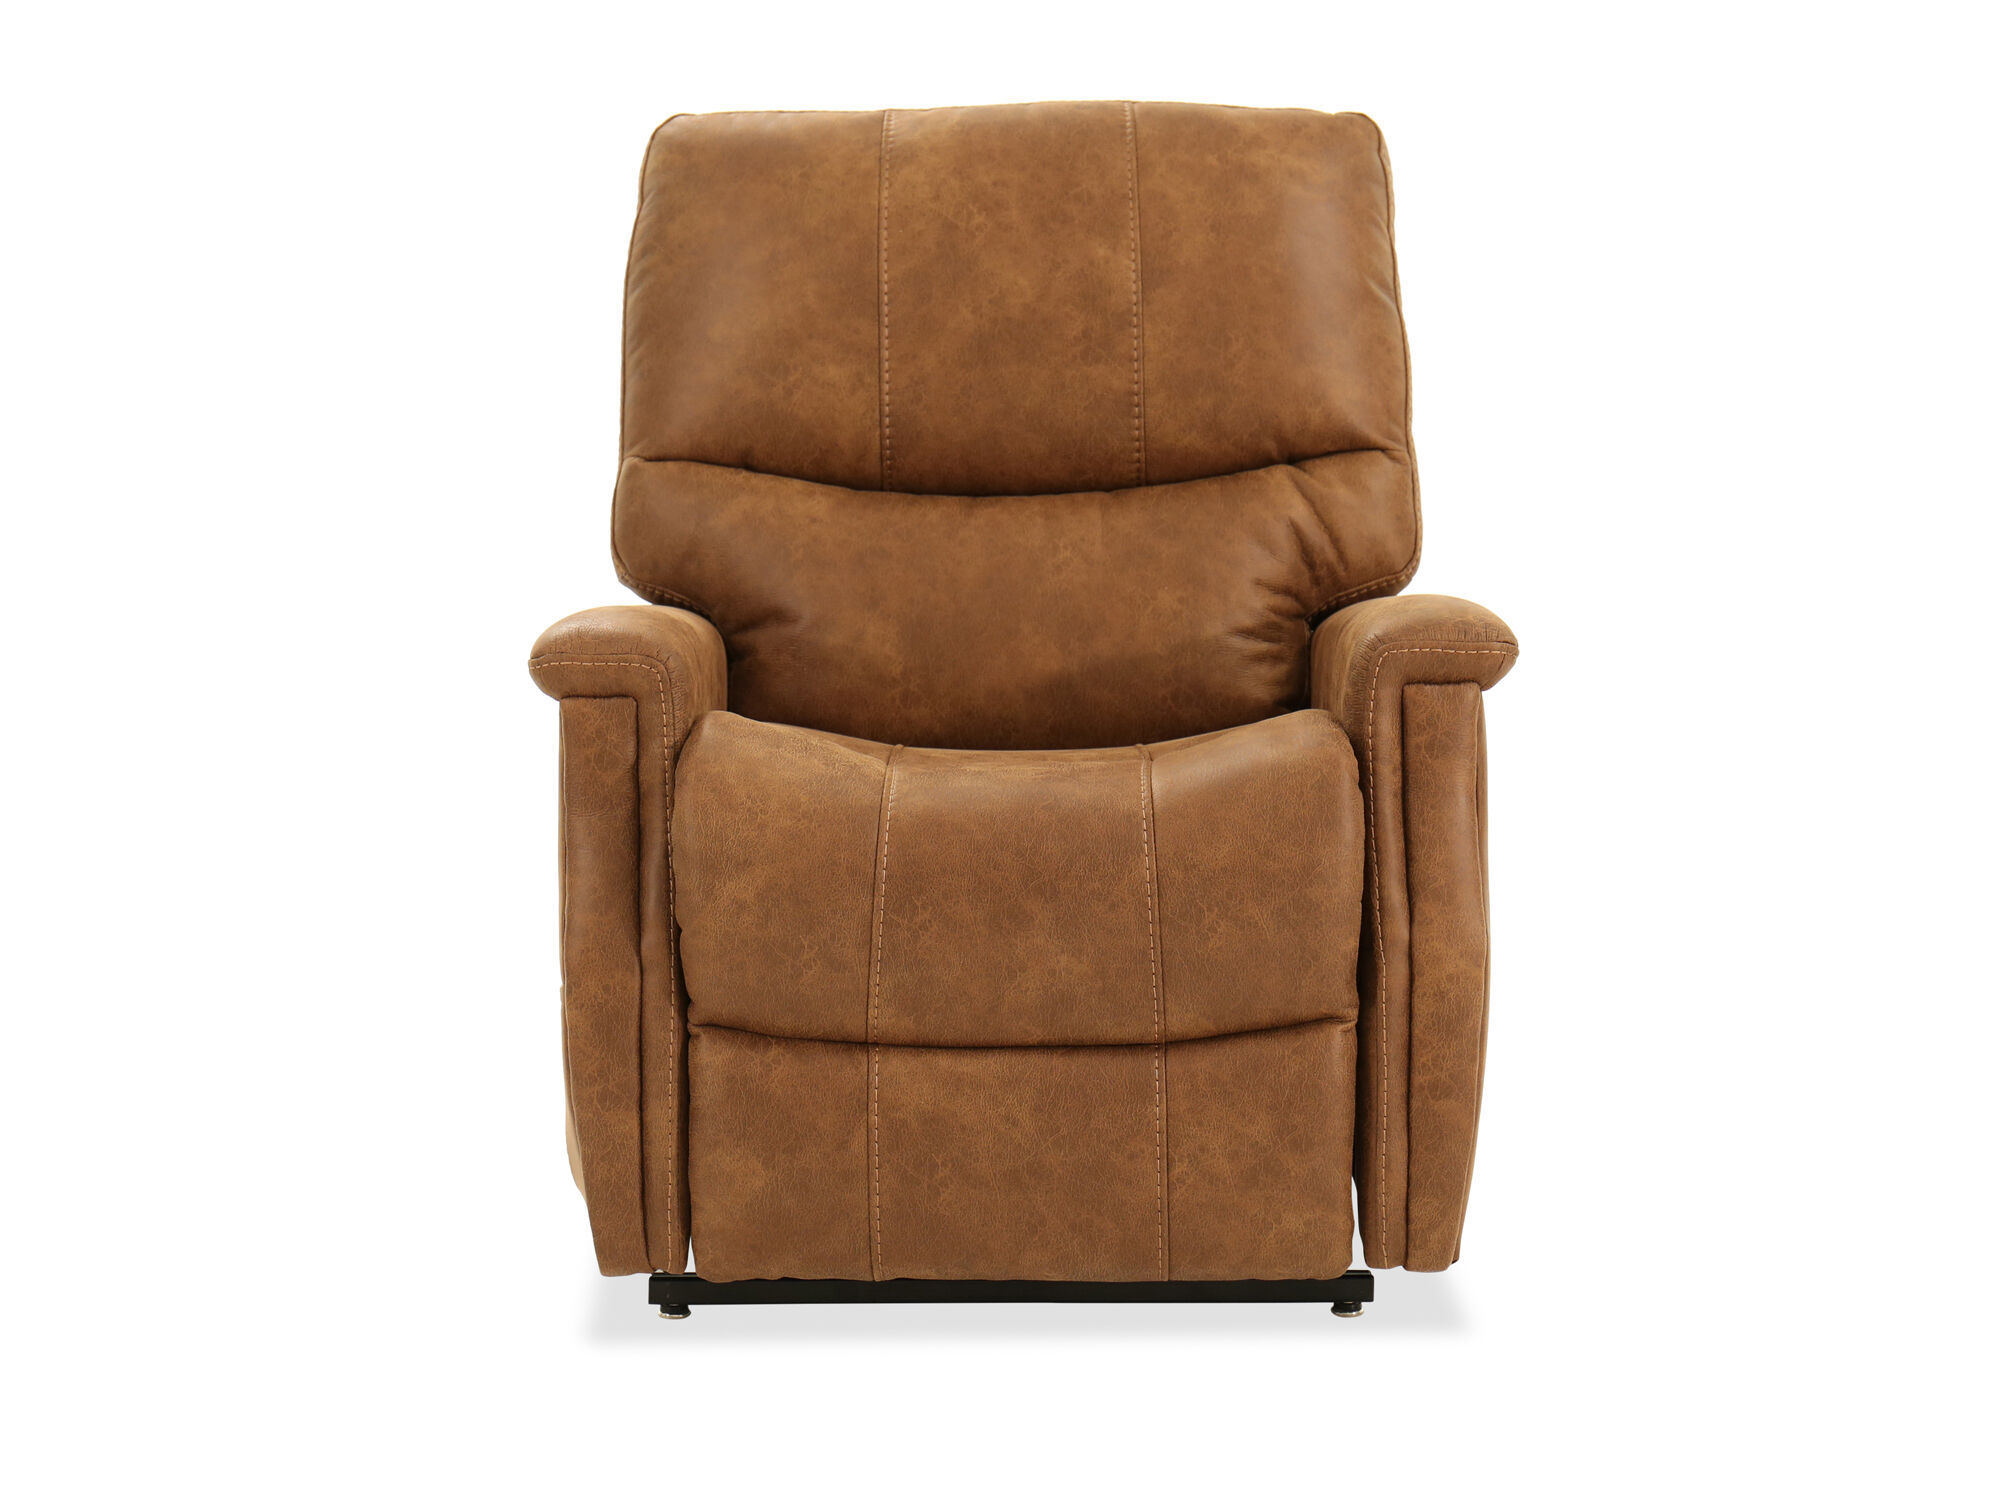 Beau Images Remote Controlled Leather 34.5u0026#39;u0026#39; Power Lift Chair In  Remote Controlled Leather 34.5u0026#39;u0026#39; Power Lift Chair In